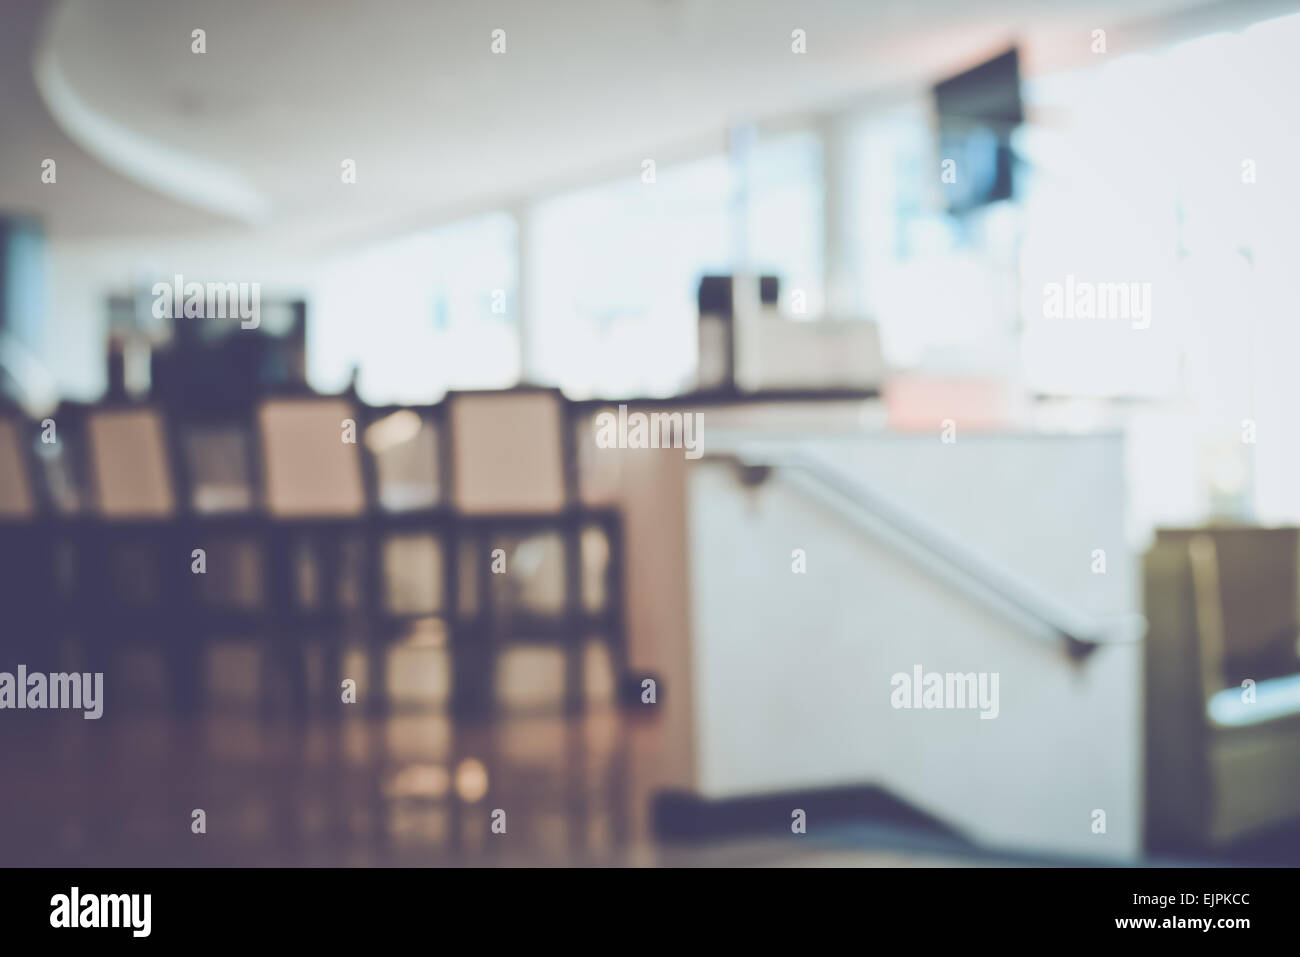 Blurred Modern Hotel Bar with Retro Instagram Style Filter - Stock Image